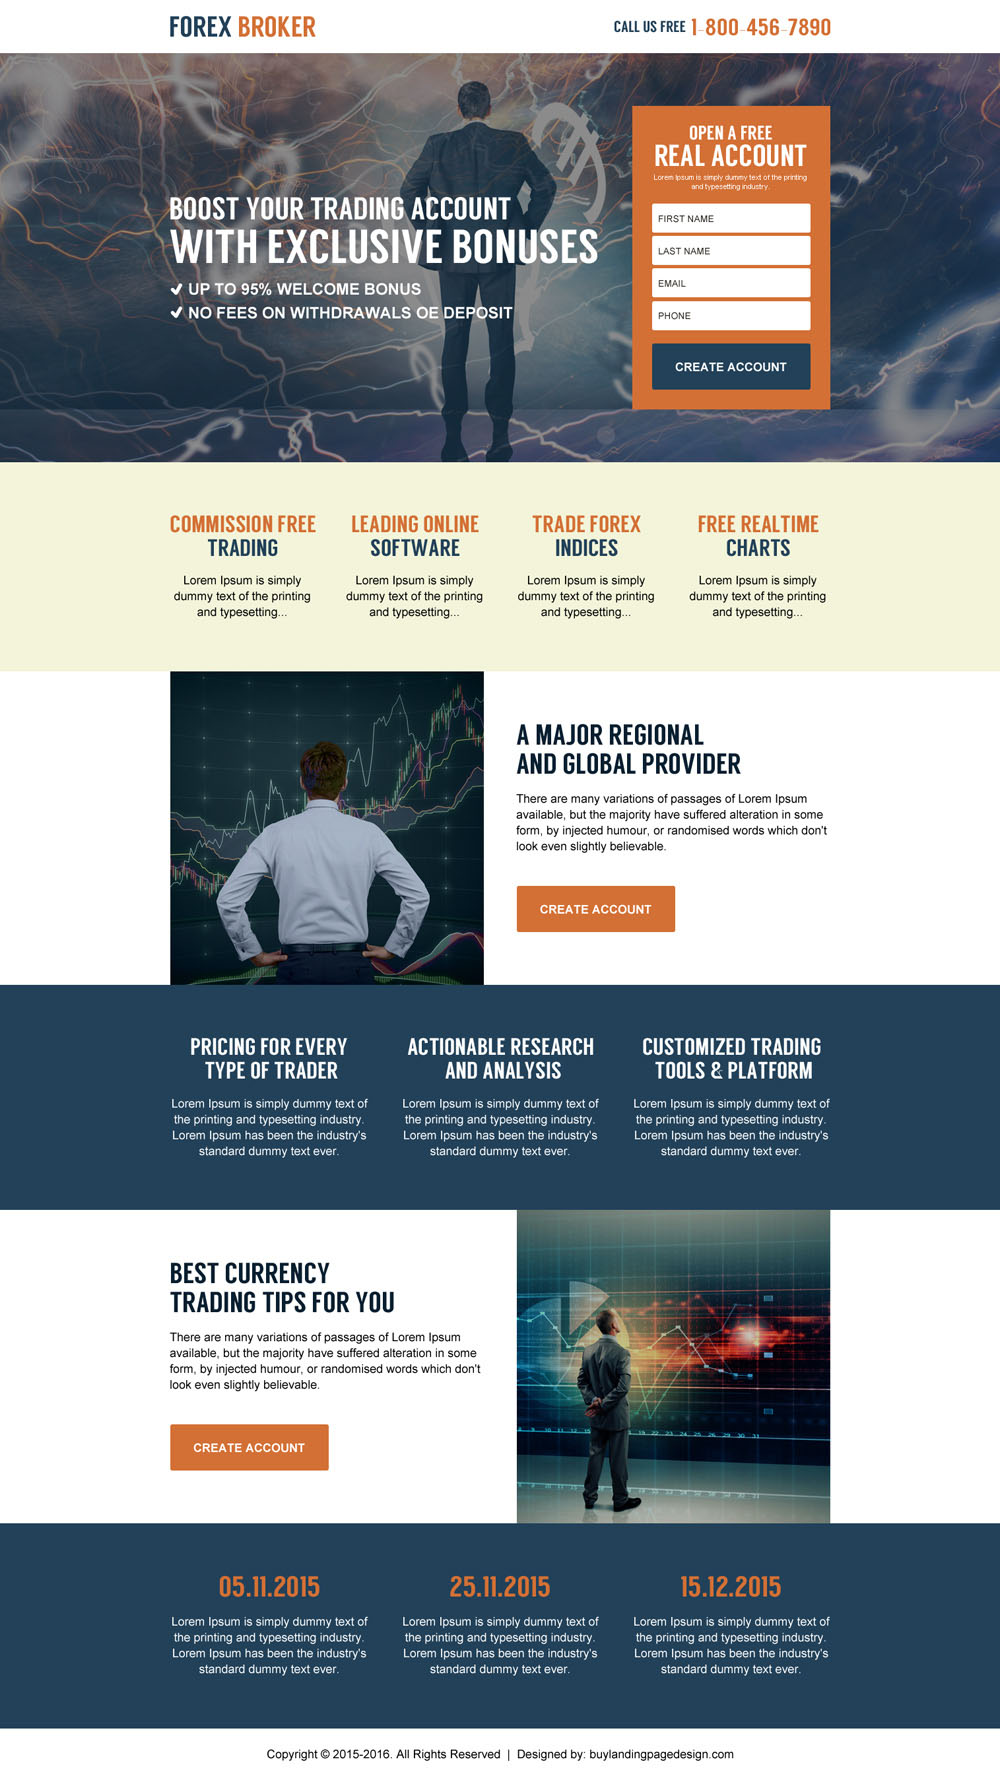 Forex broker web design